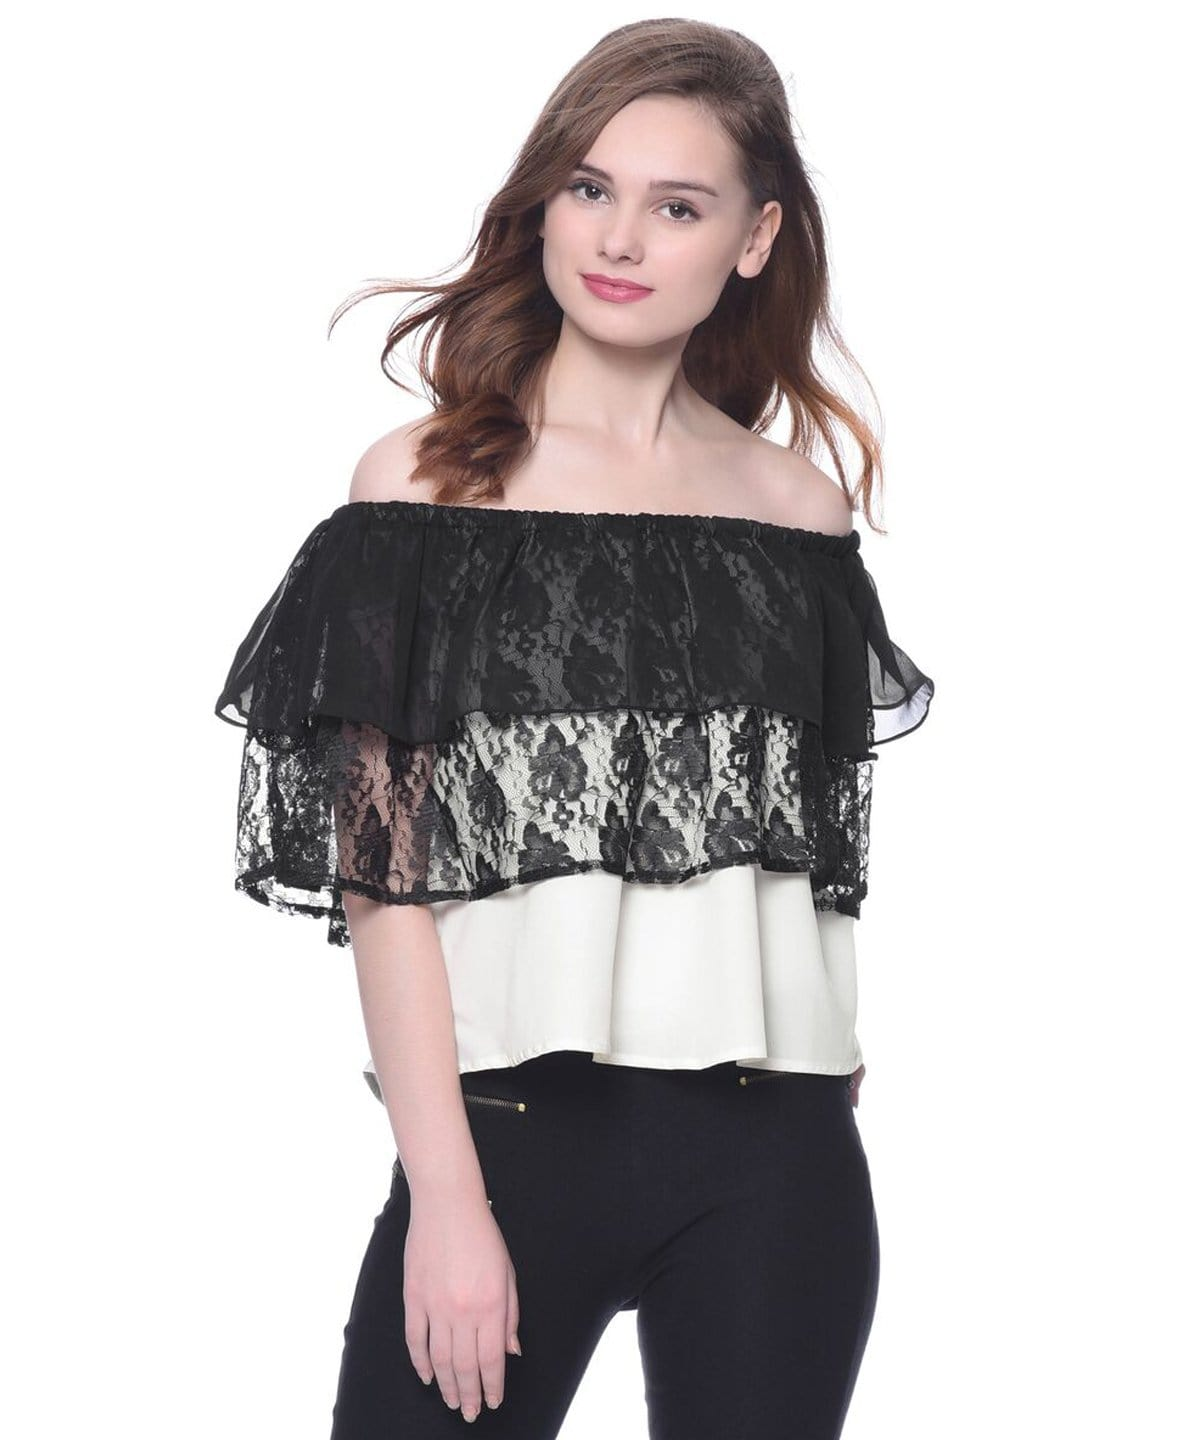 Solid Black & White Crepe Lace & Ruffles Off Shoulder Top. SALE UNDER 399